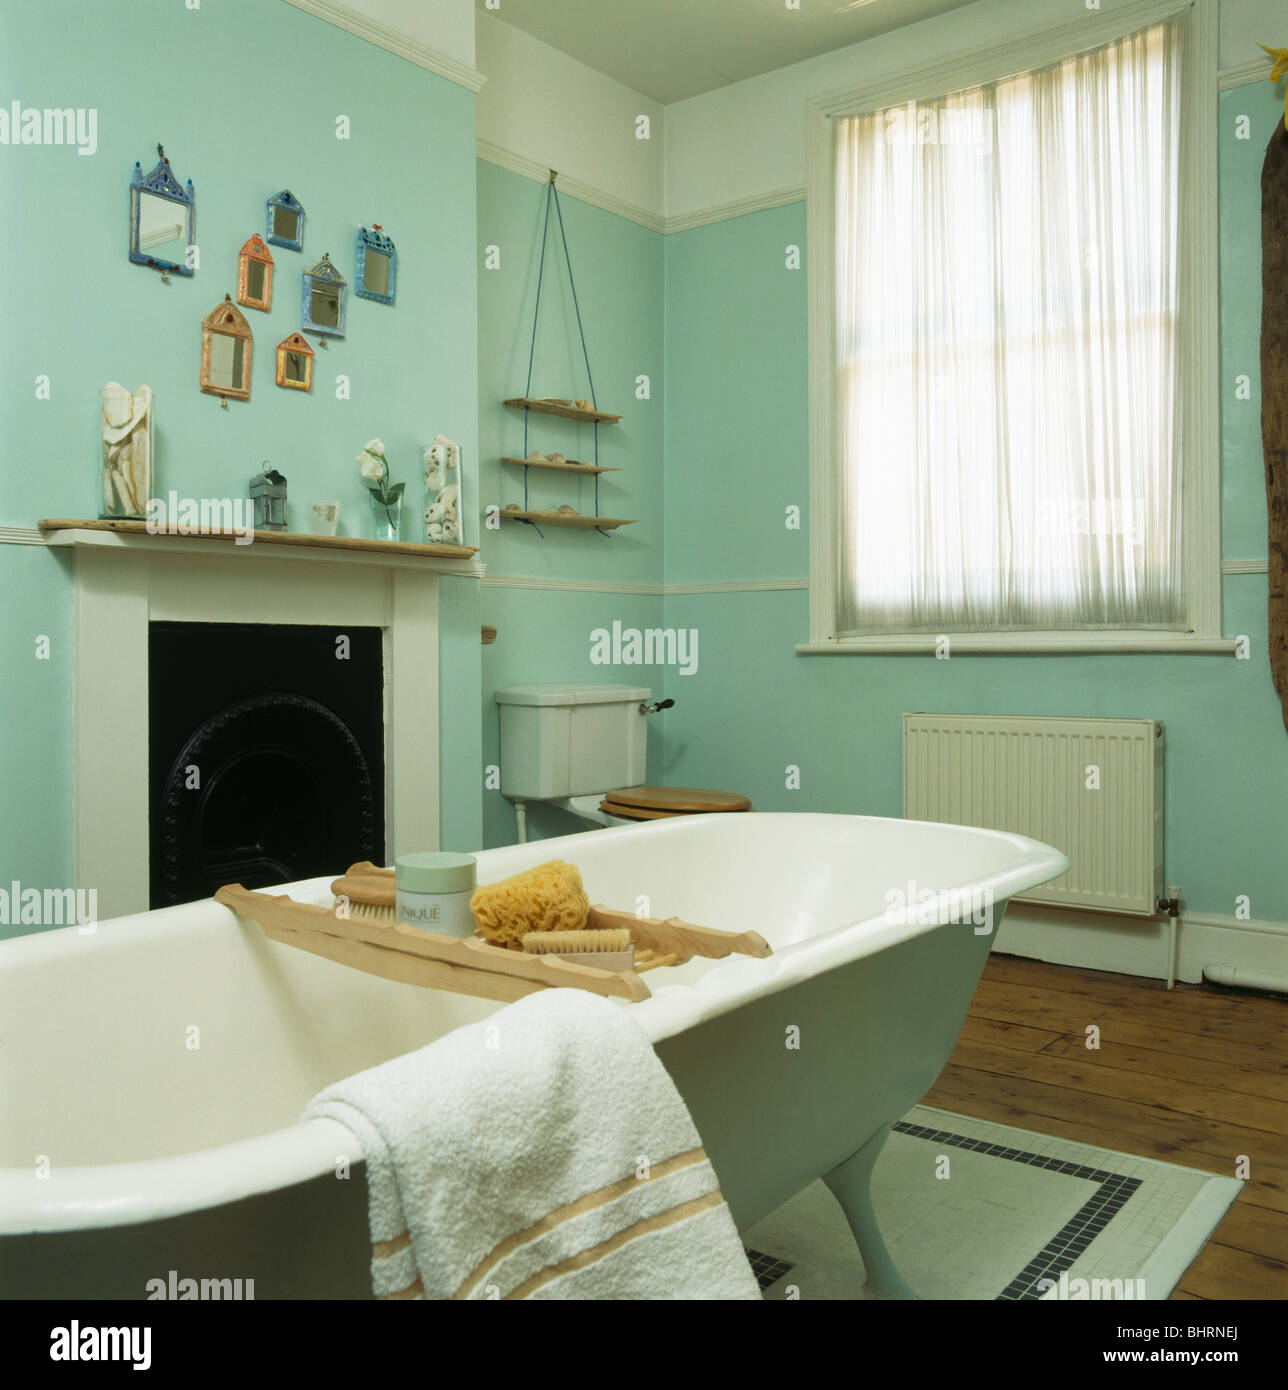 Roll top bath with wooden bath rack in pale green bathroom with small white  fireplace and voile curtain on window. Roll top Bath With Wooden Bath rack In Pale Green Bathroom With